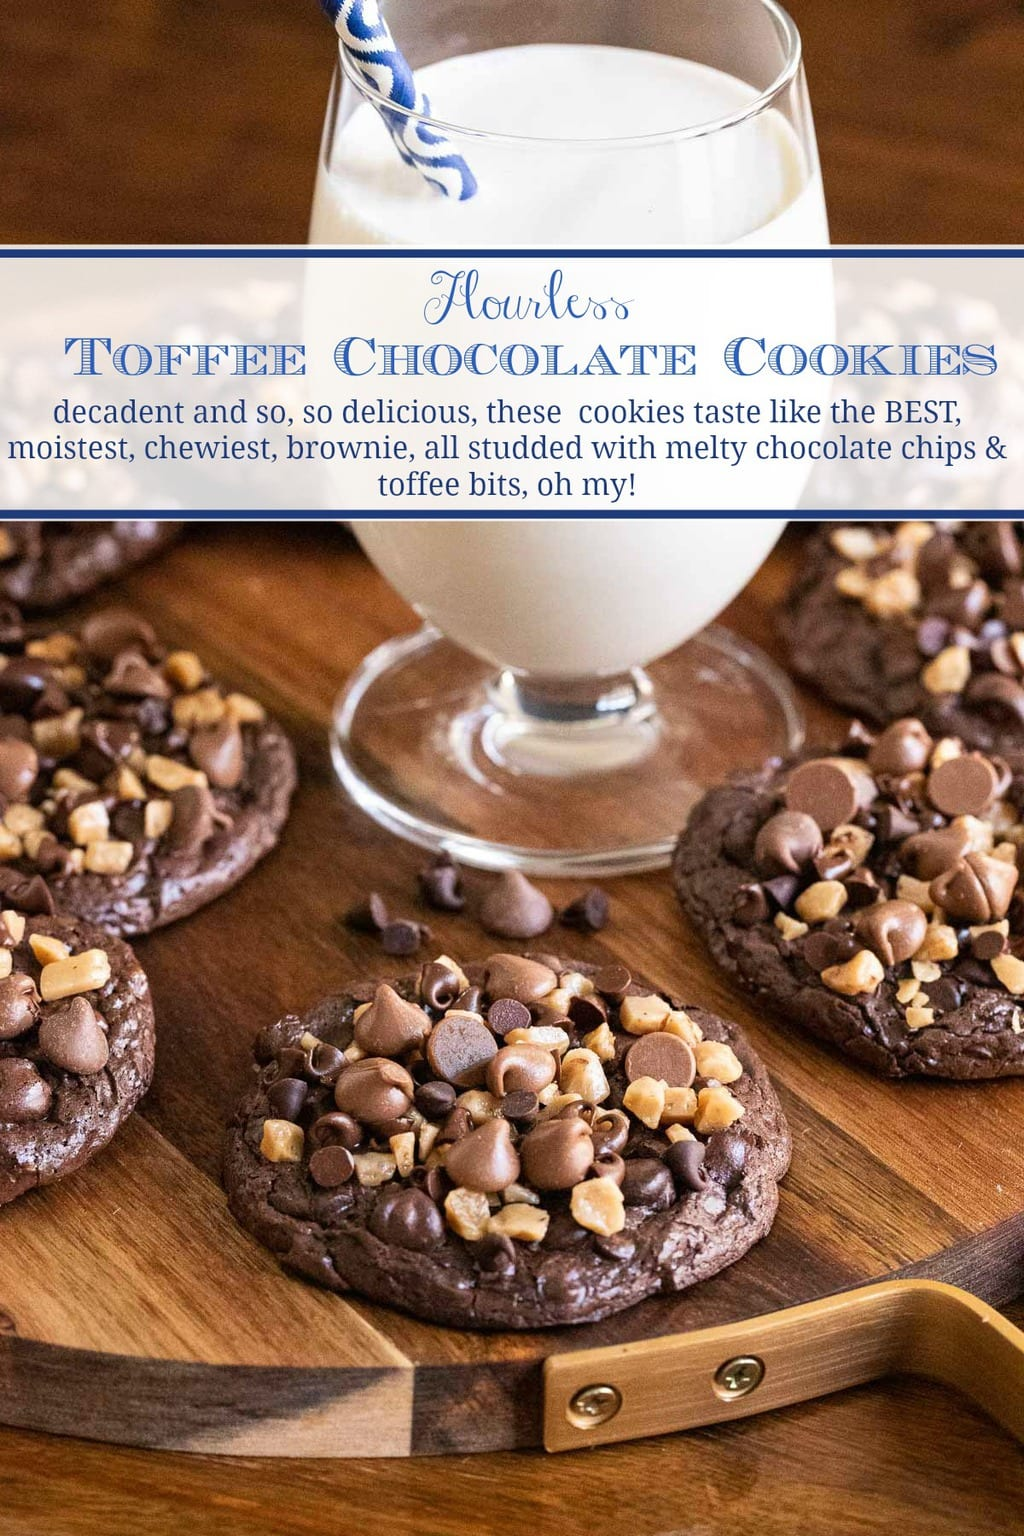 Flourless Toffee Chocolate Cookies